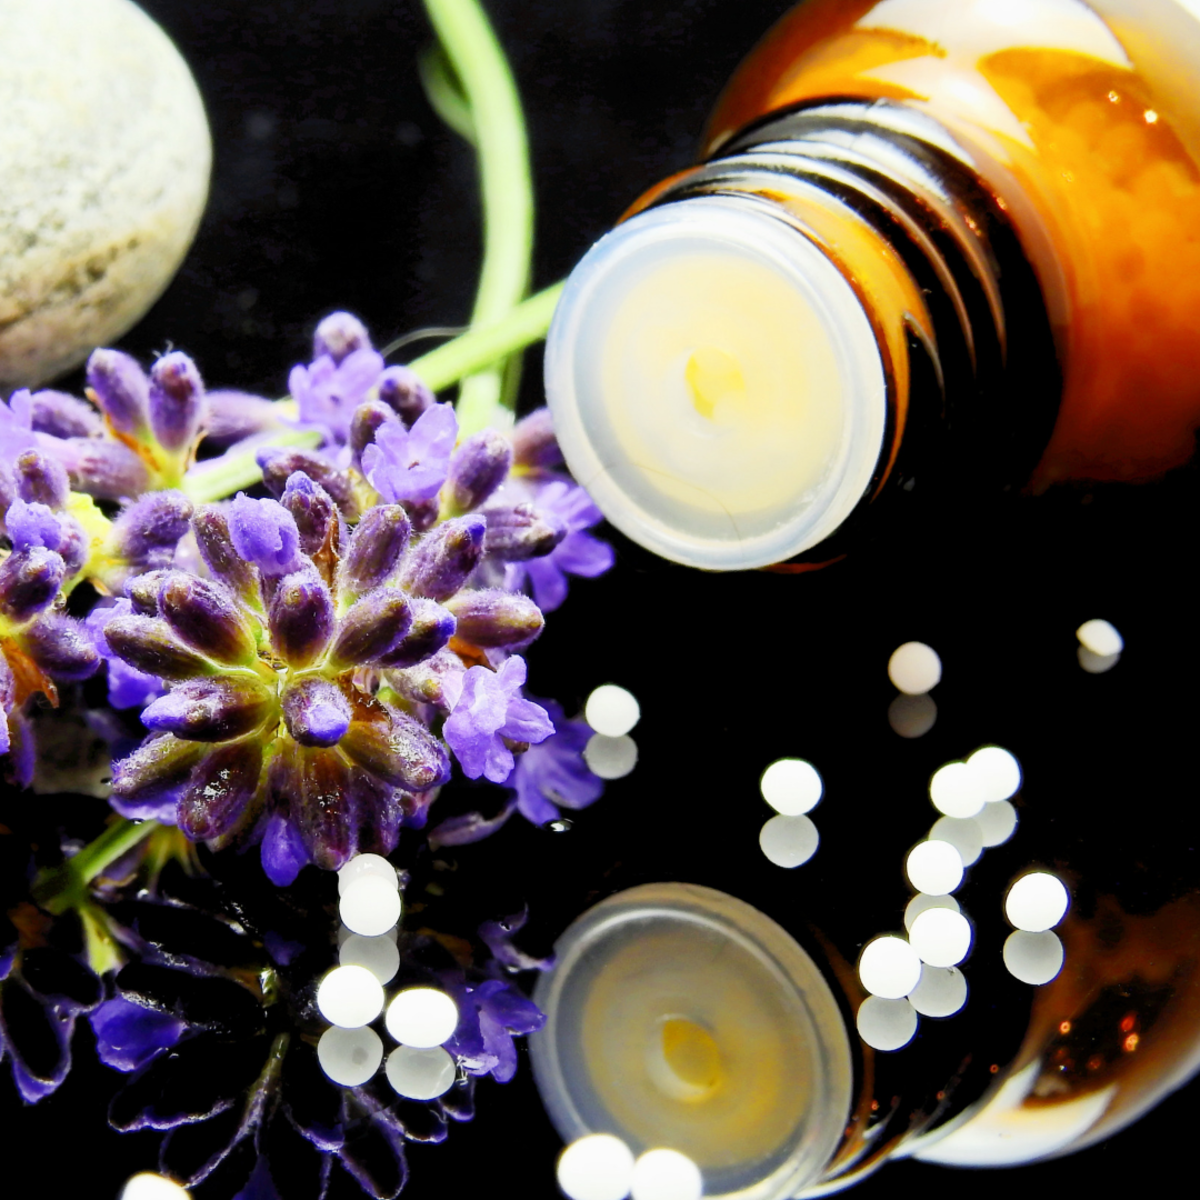 Always Follow Correct Homeopathic Dilutions